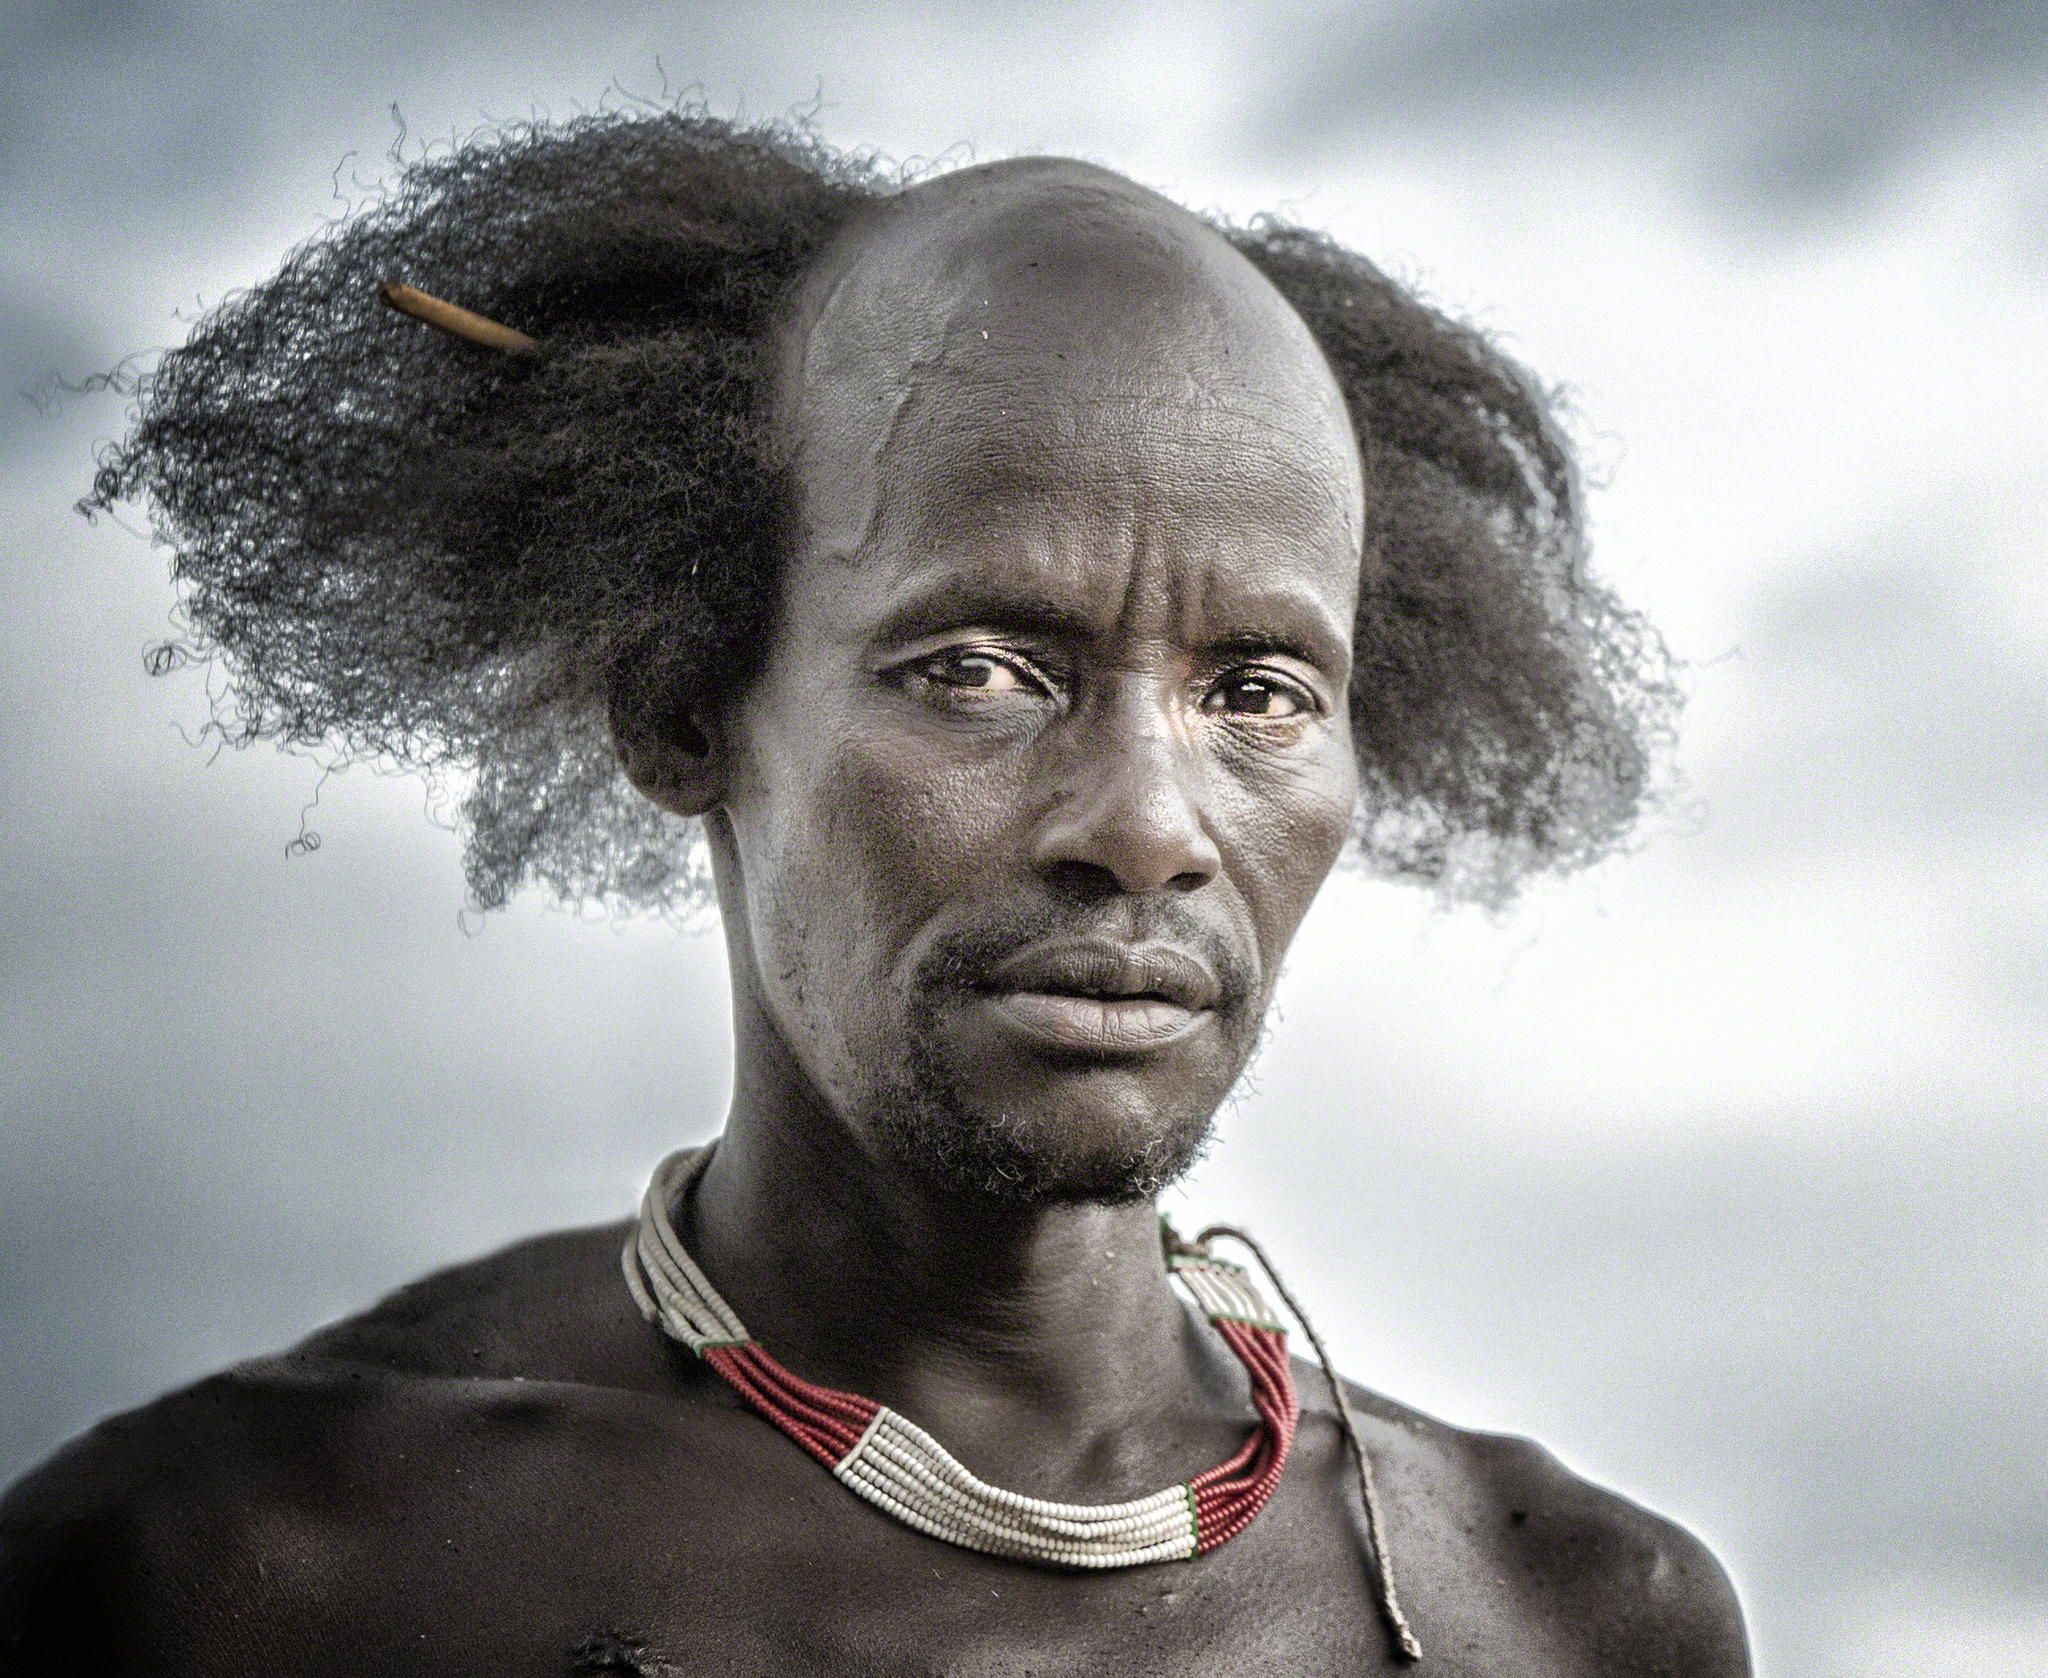 Hamar Tribesman by Stephen Wallace on 500px